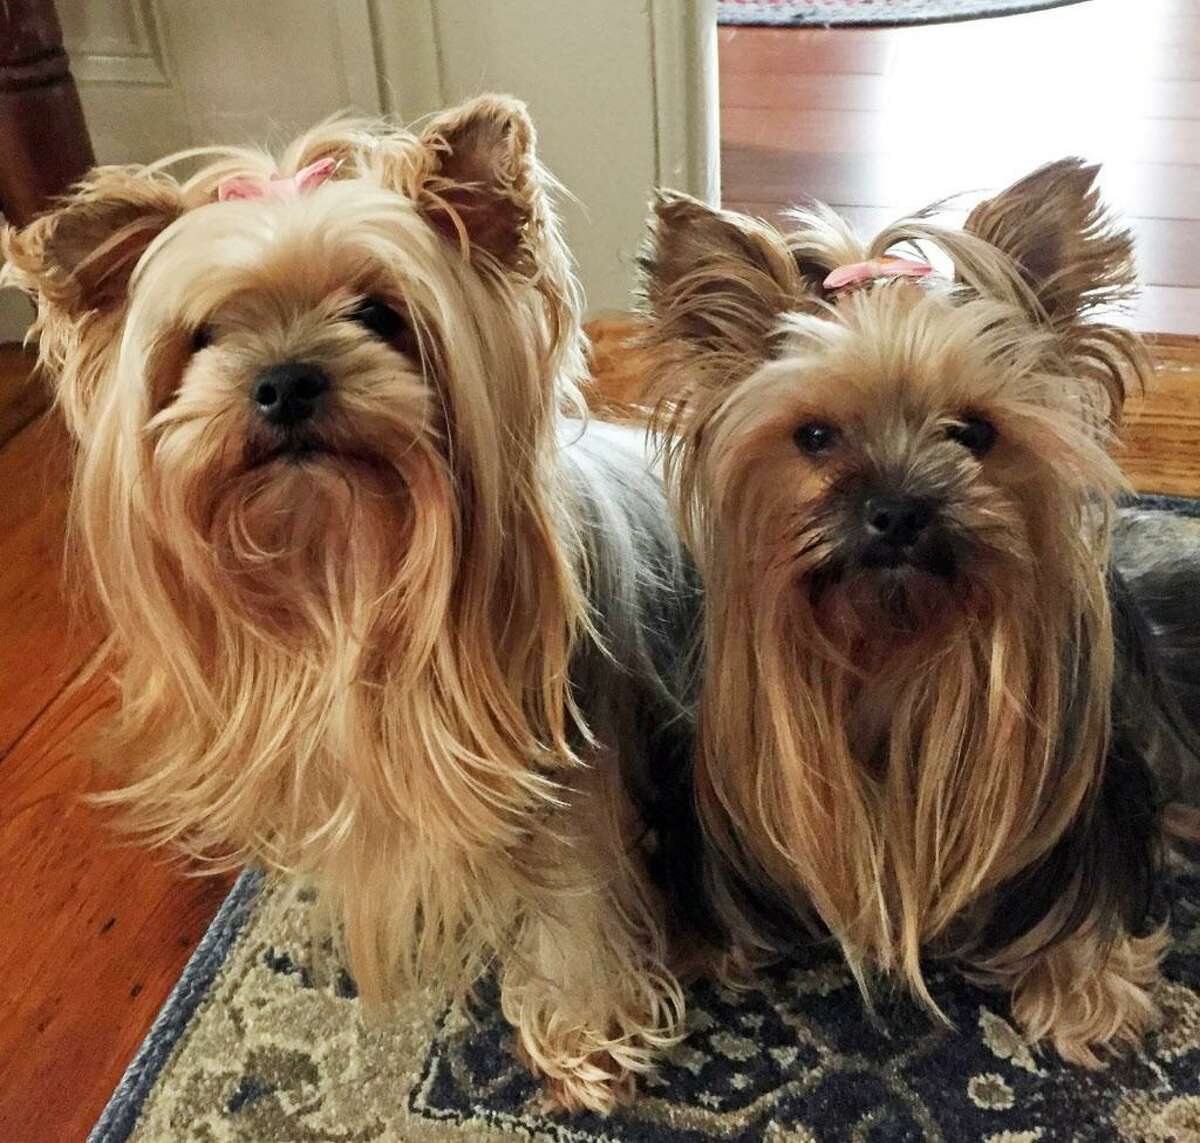 One of Portland couple William and Ann Barrows' Yorkies Lizzie, right, died Nov. 15 after a Rottweiler/Labrador mix got away from his owner, grabbed her and shook her on Main Street. At left is Lola.